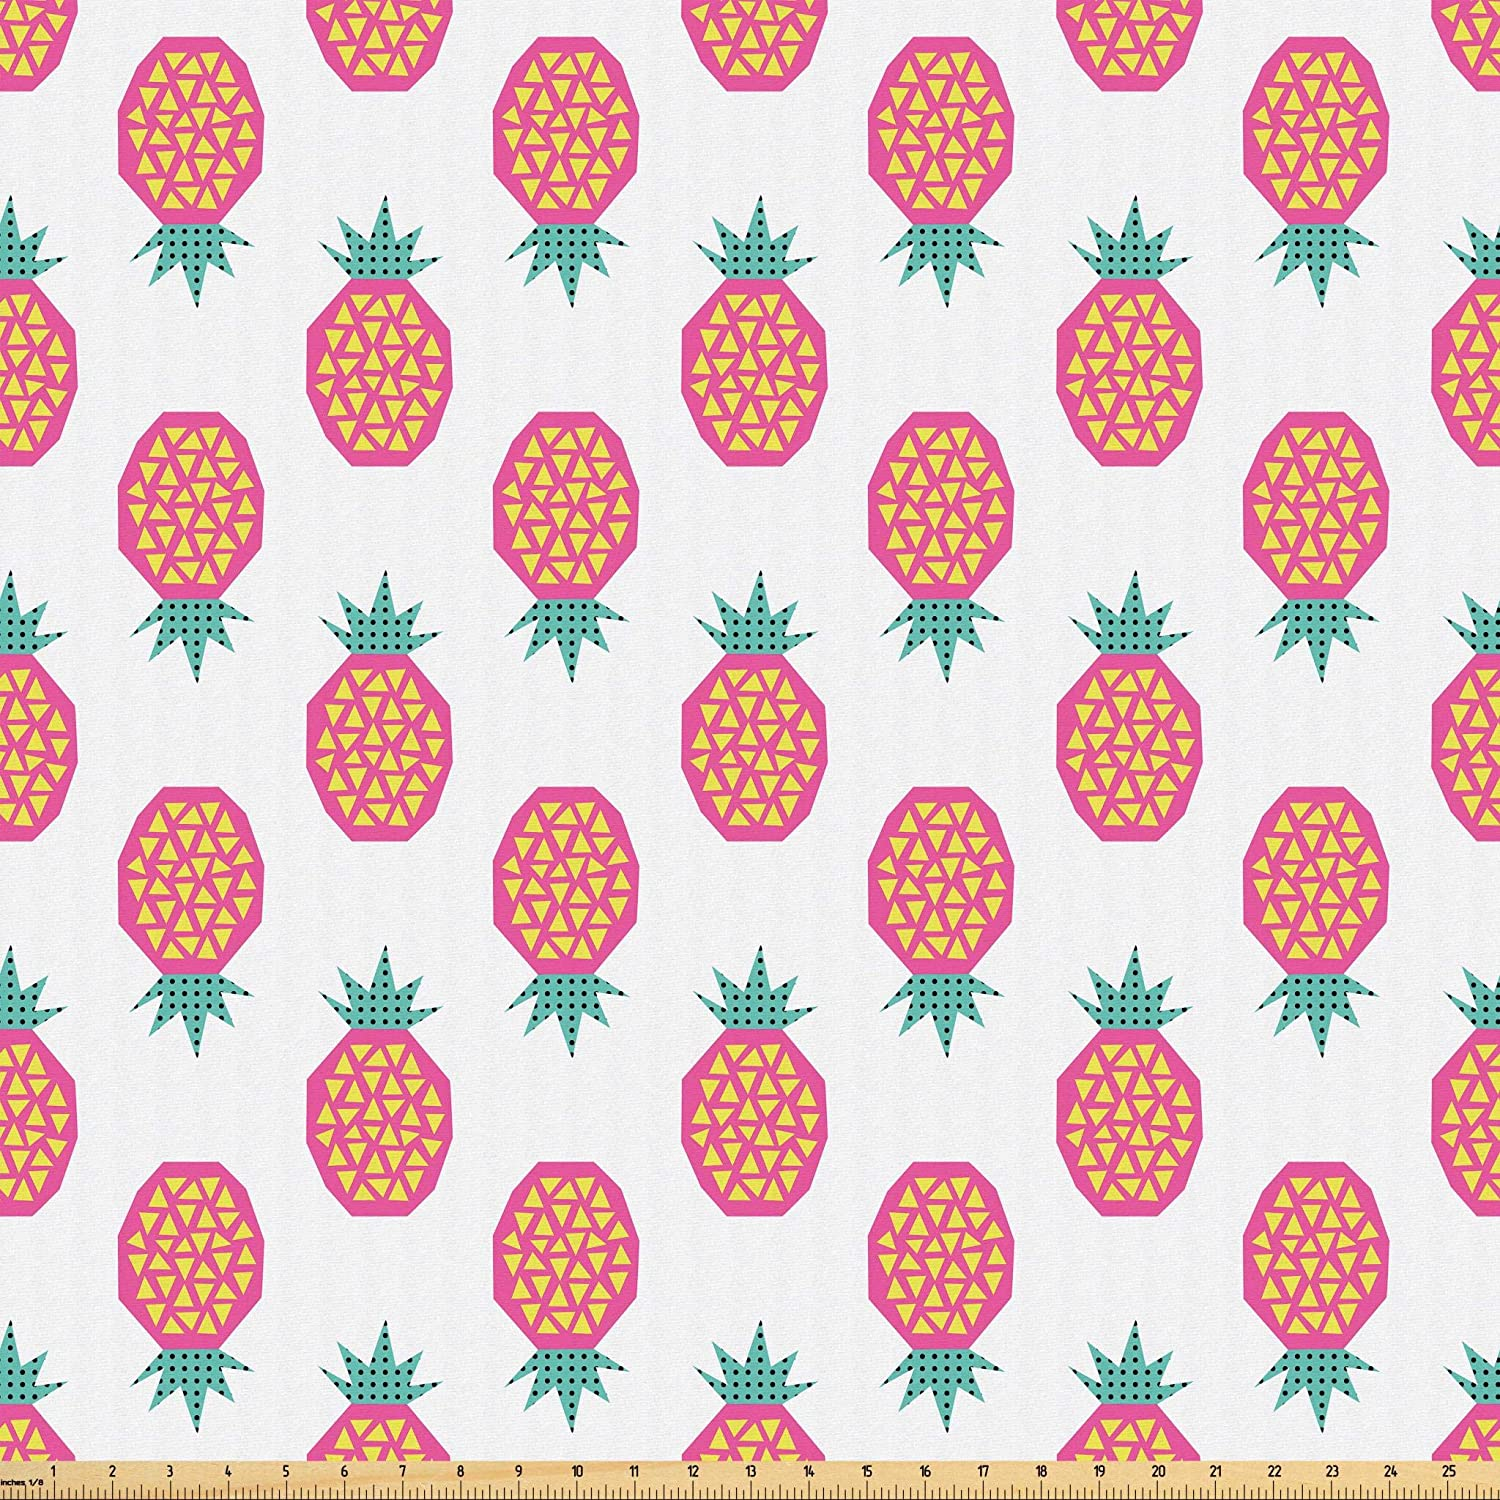 Lunarable Retro Modern Fabric by The Yard, Tropical Theme Exotic Pineapples with Triangular Details, Microfiber Fabric for Arts and Crafts Textiles & Decor, 10 Yards, Pale Sea Green Pink and Yellow